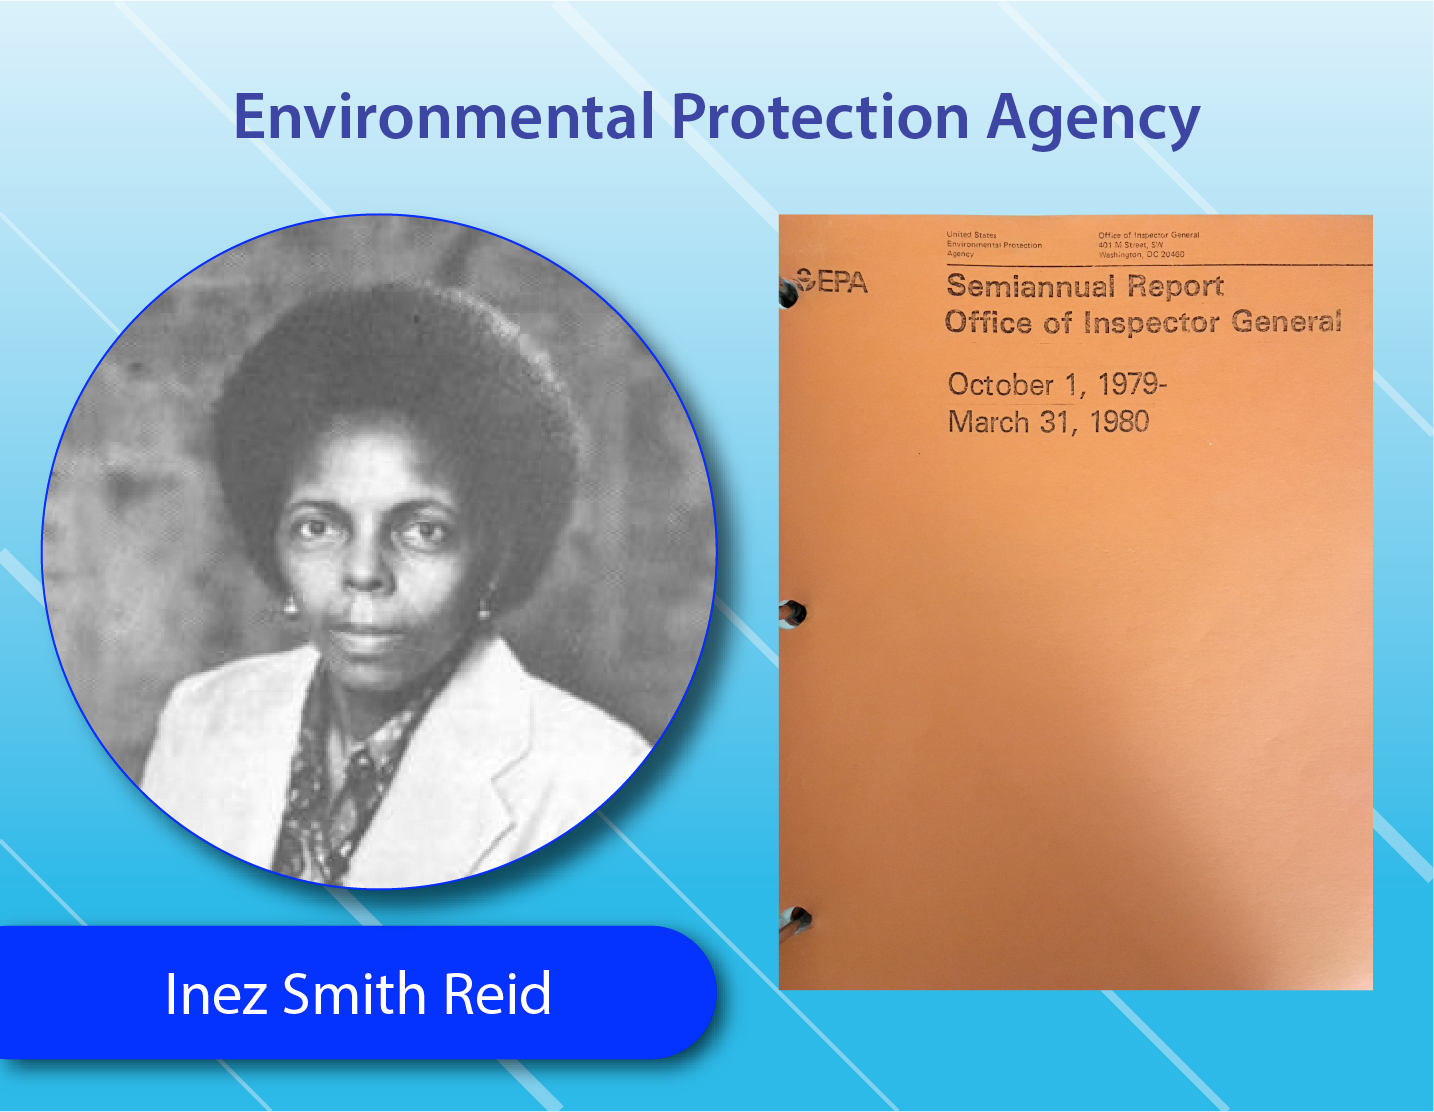 Environmental Protection Agency - Inez Smith Reid